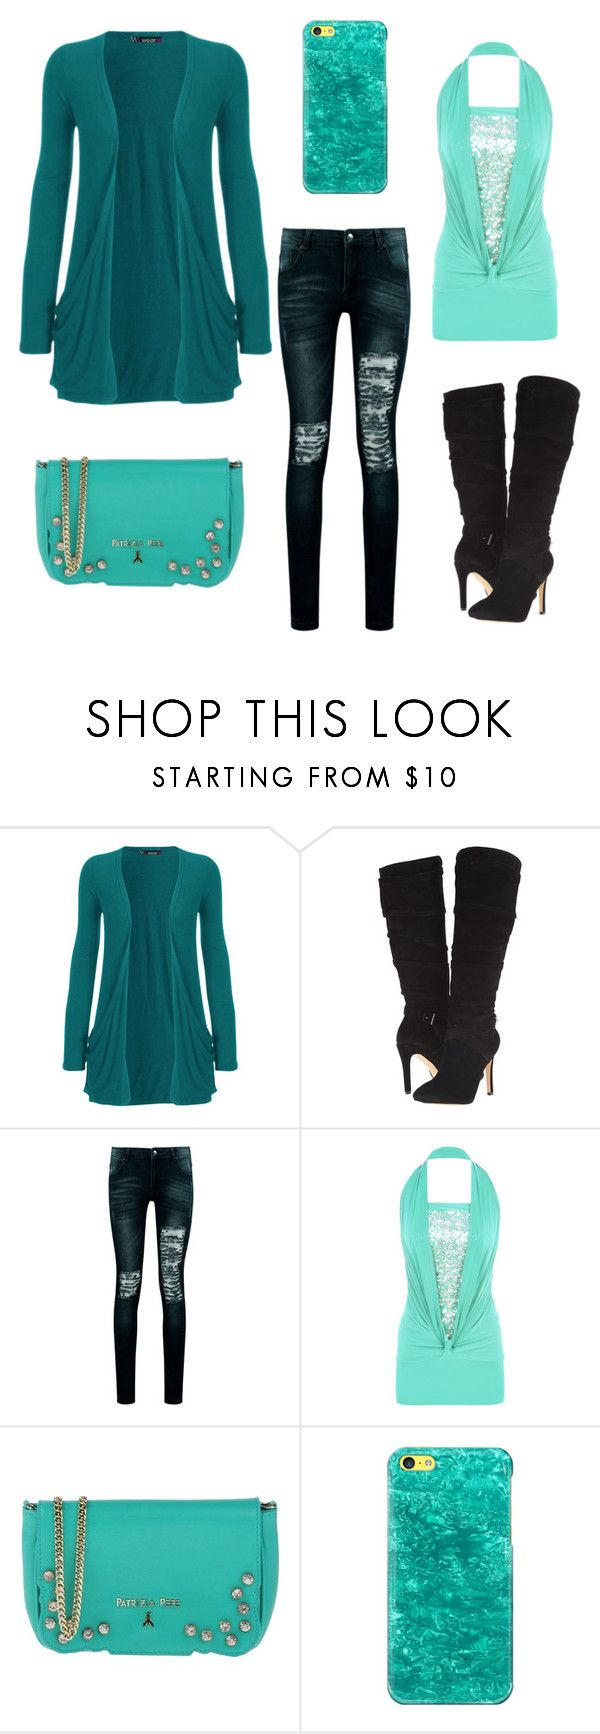 """""""Untitled #279"""" by erinn-hutchins ❤ liked on Polyvore featuring WearAll, GUESS, Boohoo, Patrizia Pepe and Casetify"""